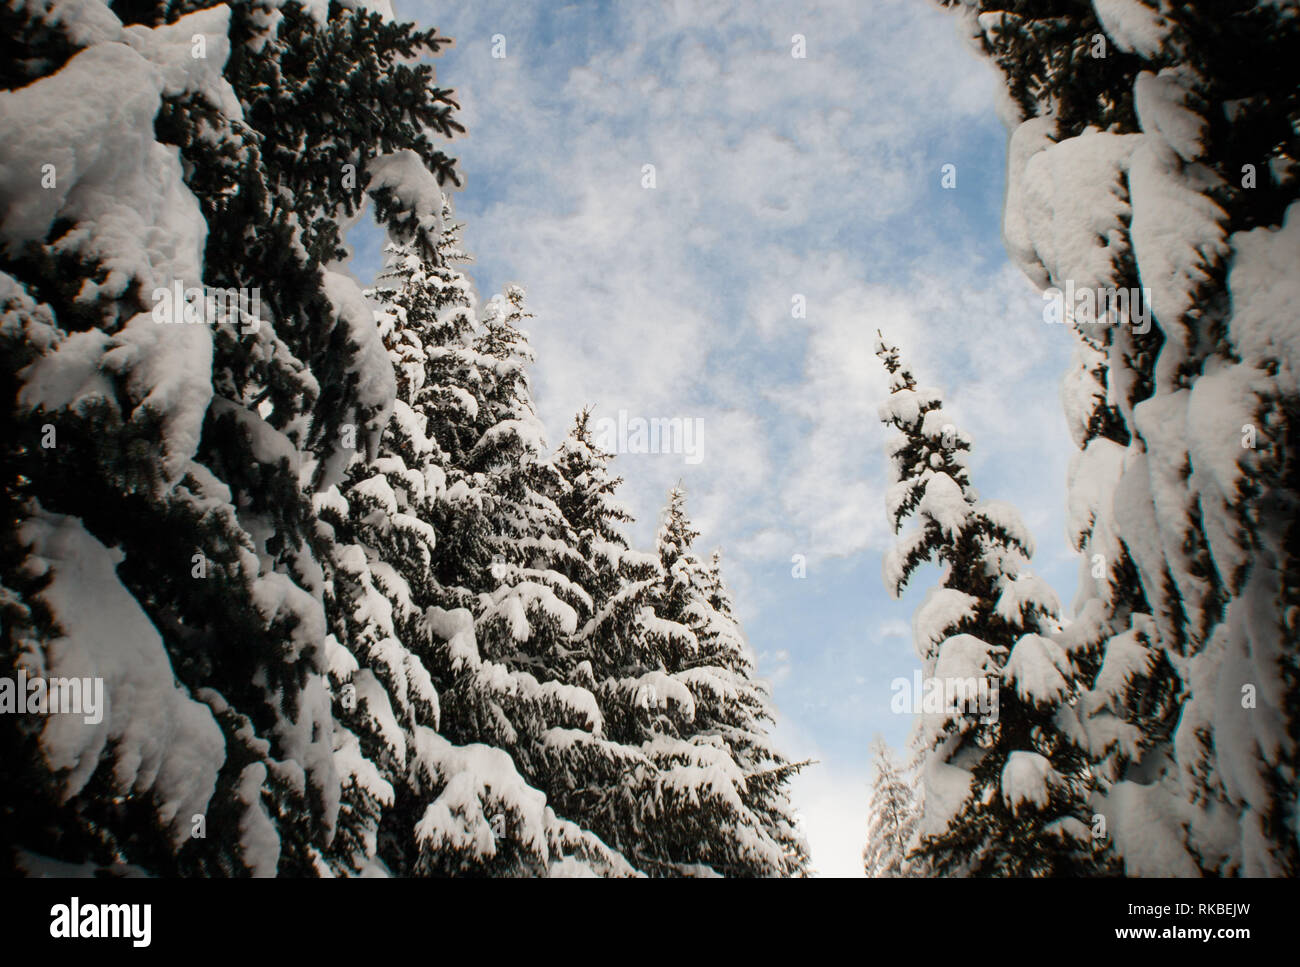 Wide, fishe eye distorted, looking up to blue soft clouds sky from majestic covered in snow  forest. Big, impressive spruce trees. - Stock Image